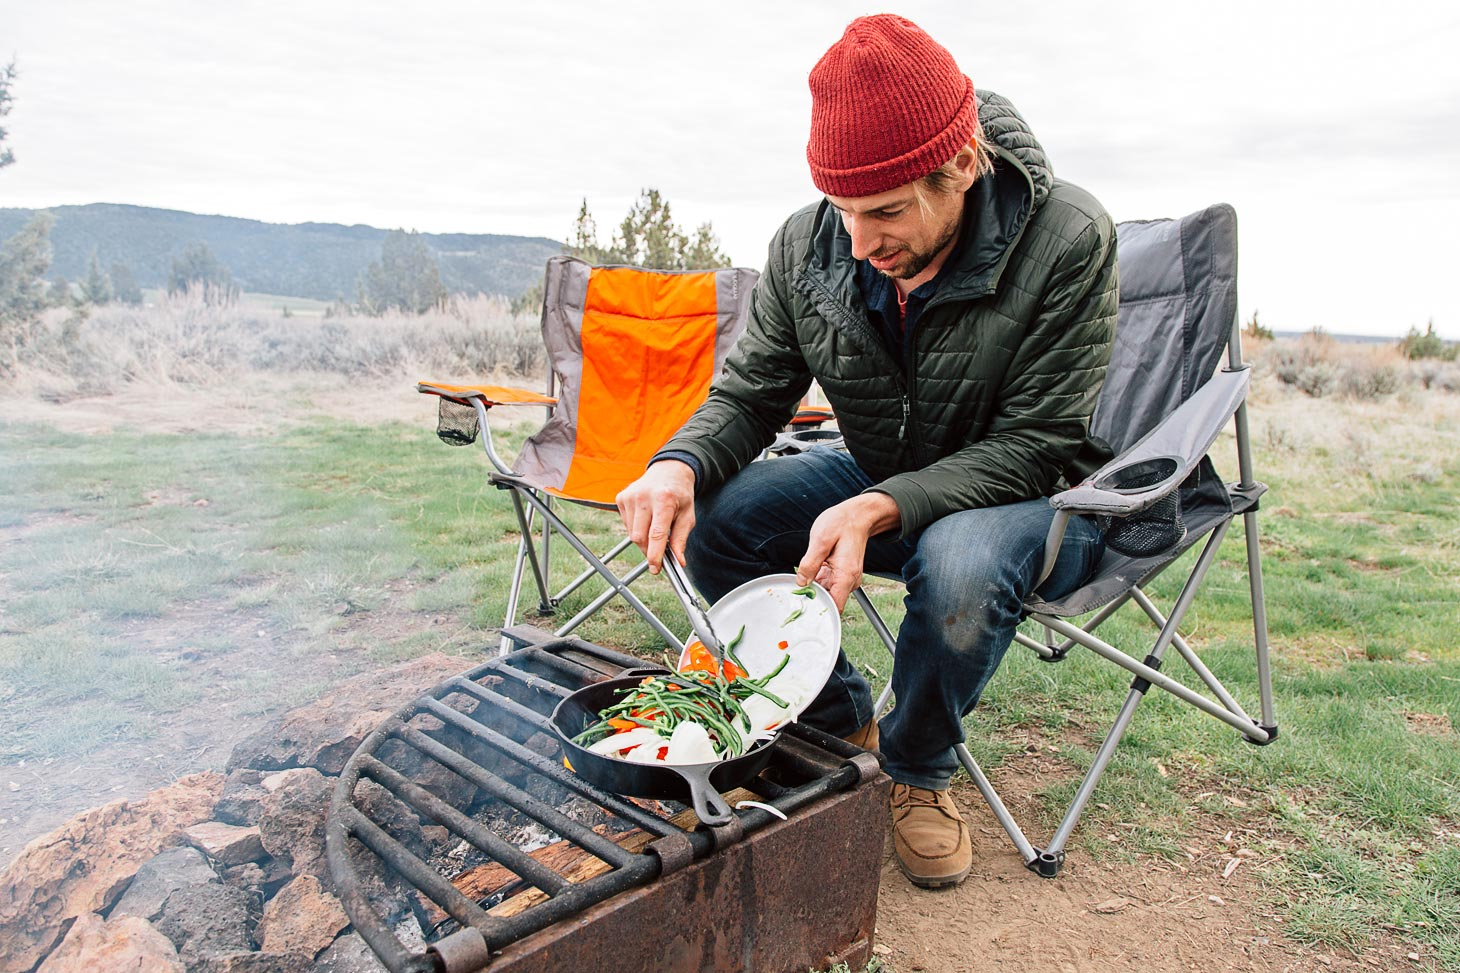 Michael adding sliced peppers into a cast-iron skillet over a campfire